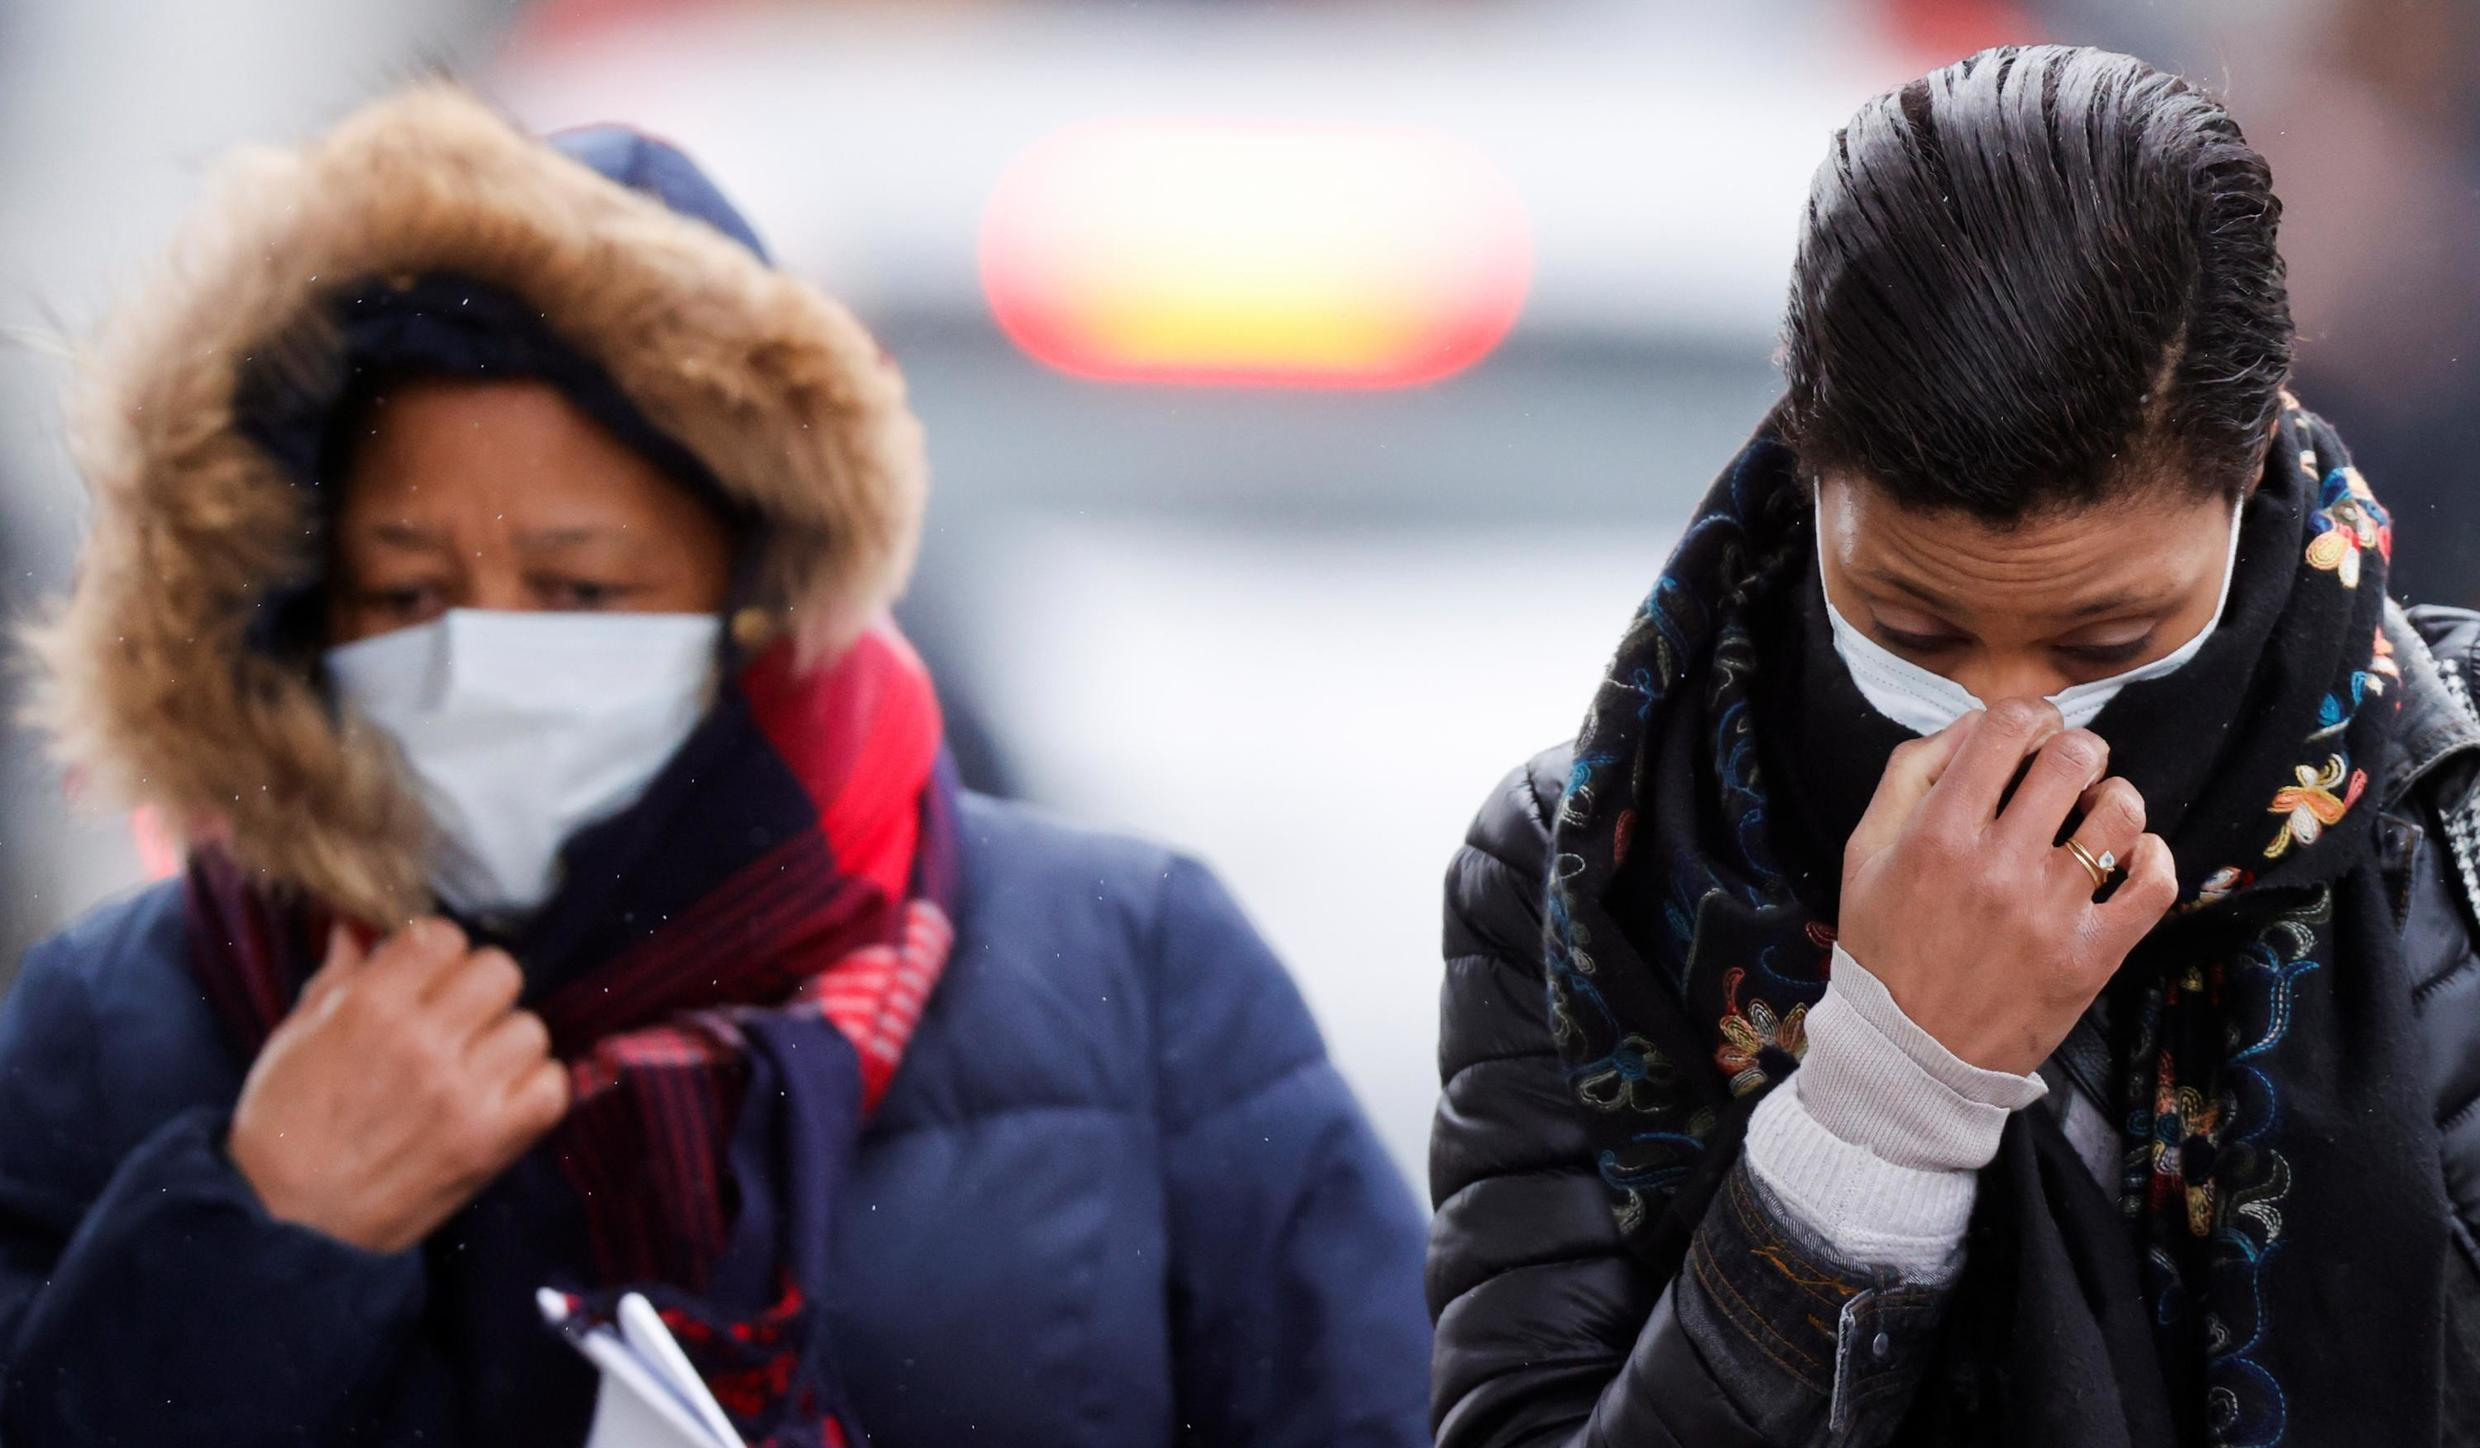 People wearing surgical masks leave a hospital in Creil, north of Paris where patients who have tested positive for COVID19 are being treated, 27 February 2020.